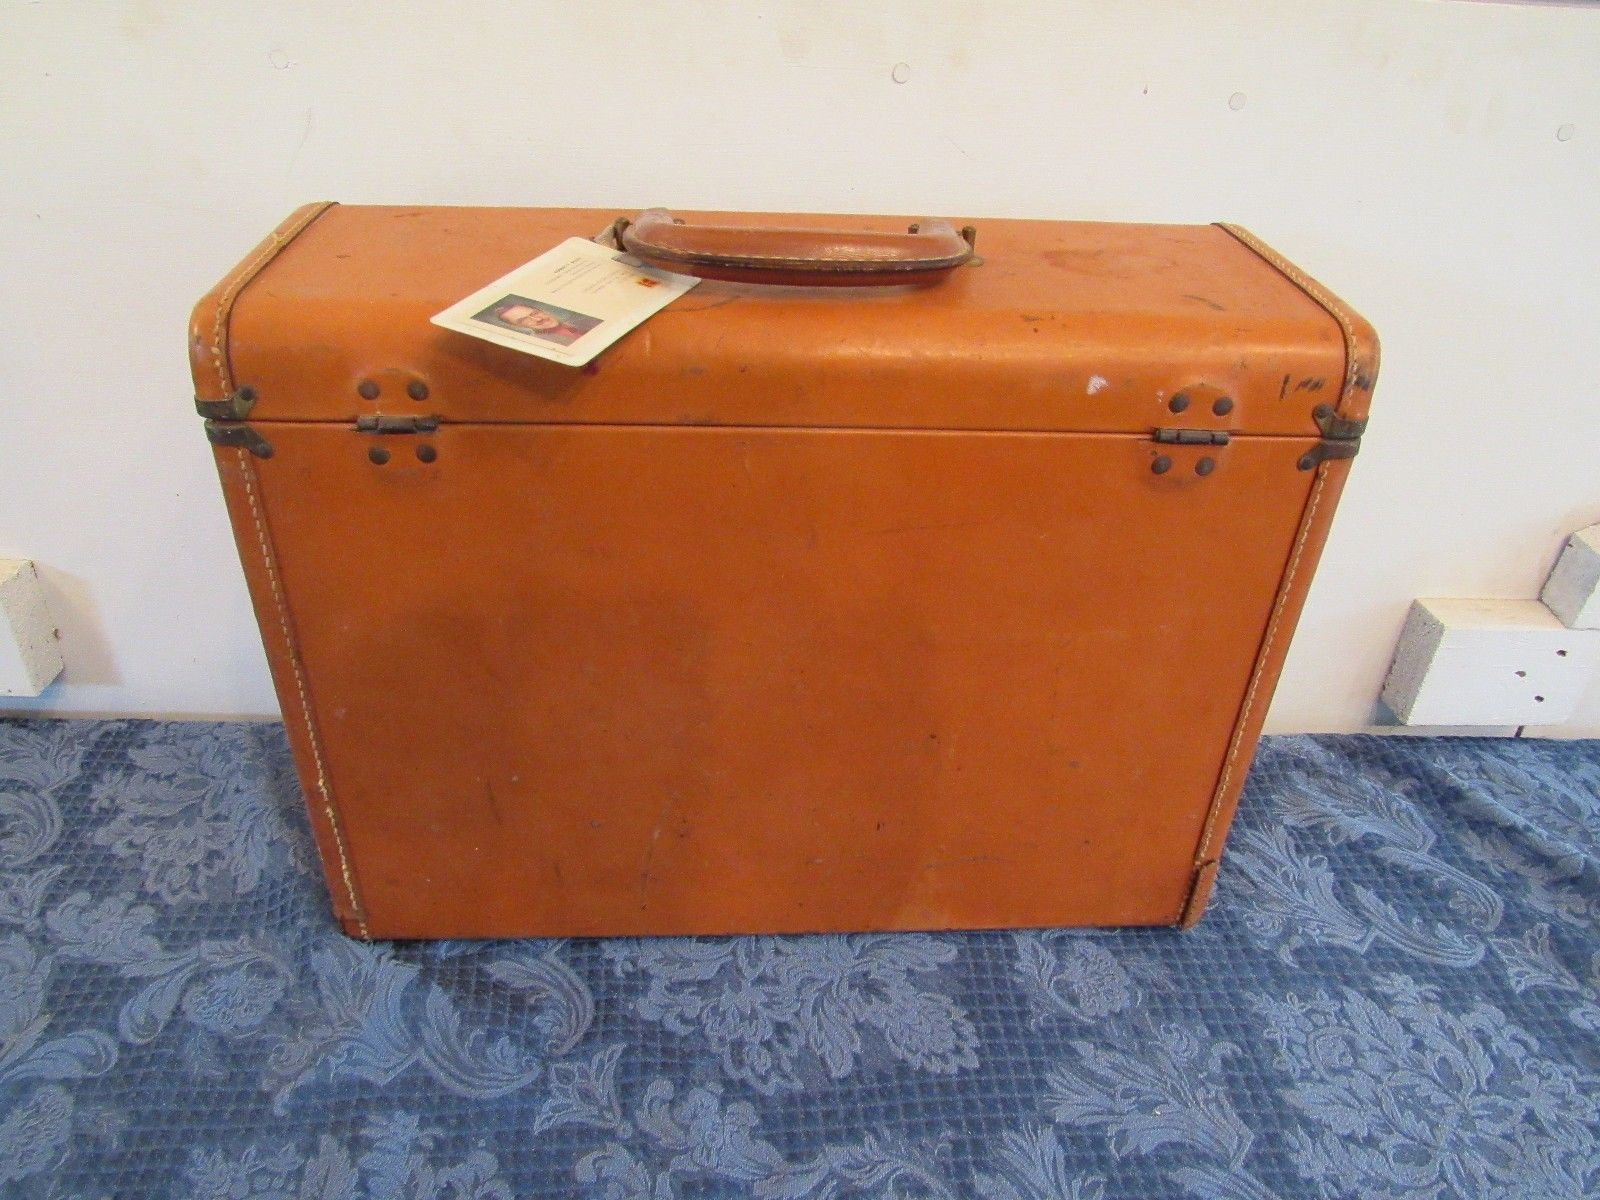 VTG Suitcase Briefcase Winship Luggage Salesman Leather Business Travel Case